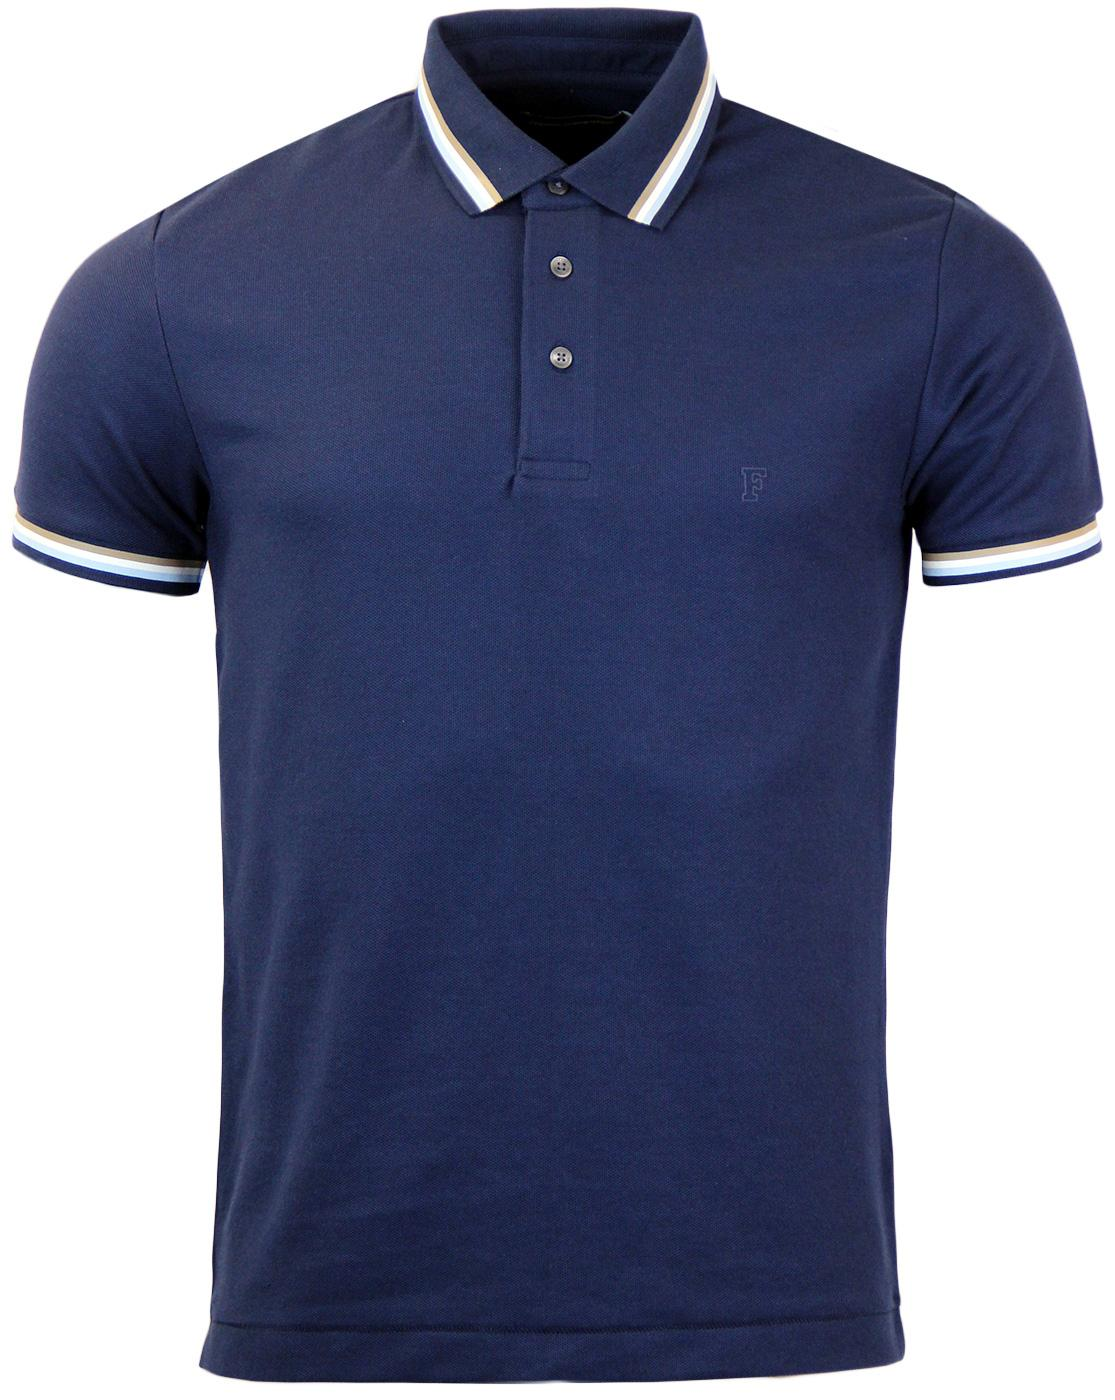 FRENCH CONNECTION Retro Indie Tipped Tennis Polo